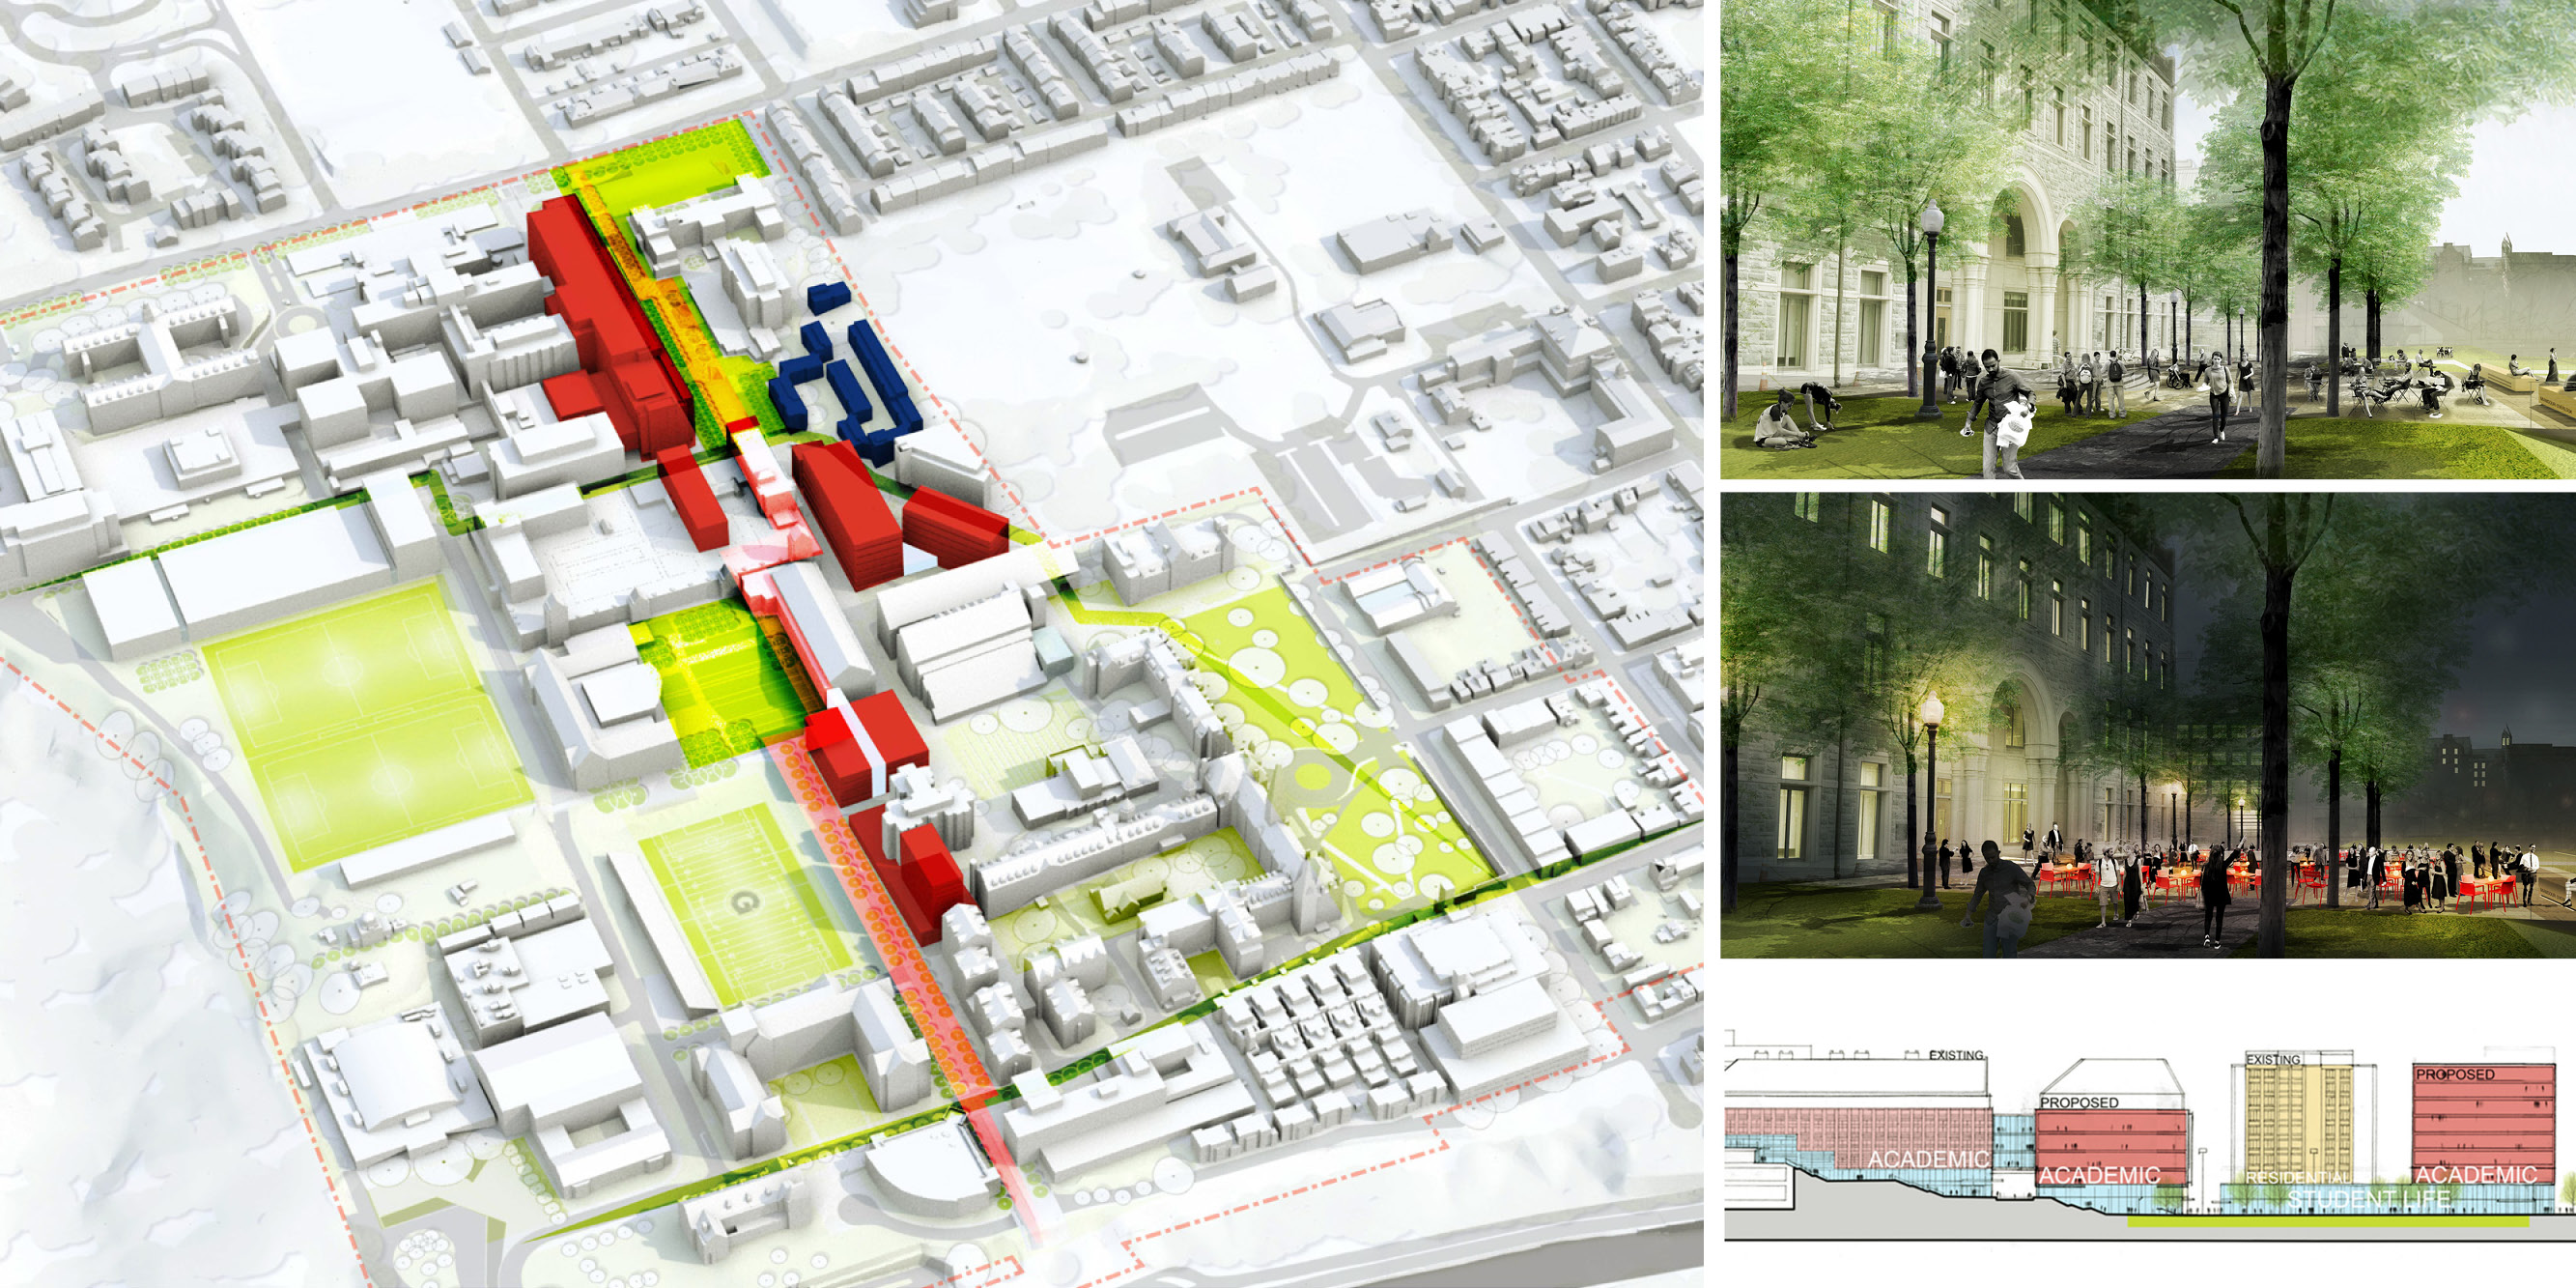 georgetown university framework plan<br />georgetown university leavey center renovation and addition<br />georgetown university downtown campus vision study<br/>Georgetown University Parcel Studies<br/>Georgetown University Lauinger Library Study